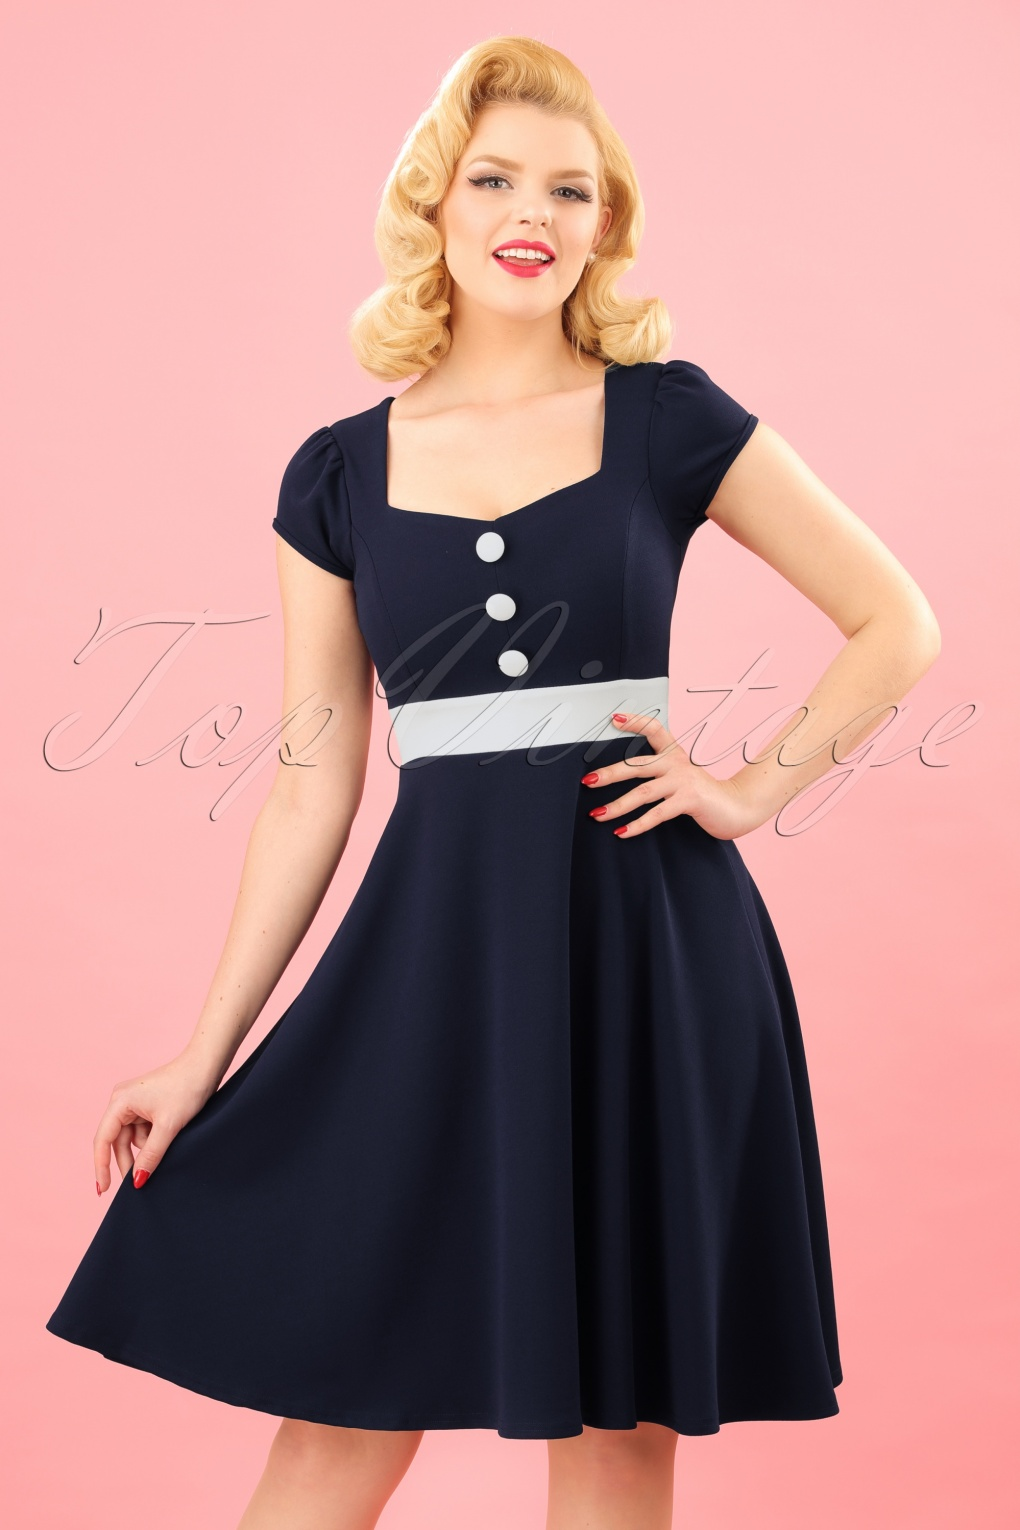 Pin Up Dresses | Pin Up Clothing 50s Rebecca Swing Dress in Navy £48.18 AT vintagedancer.com